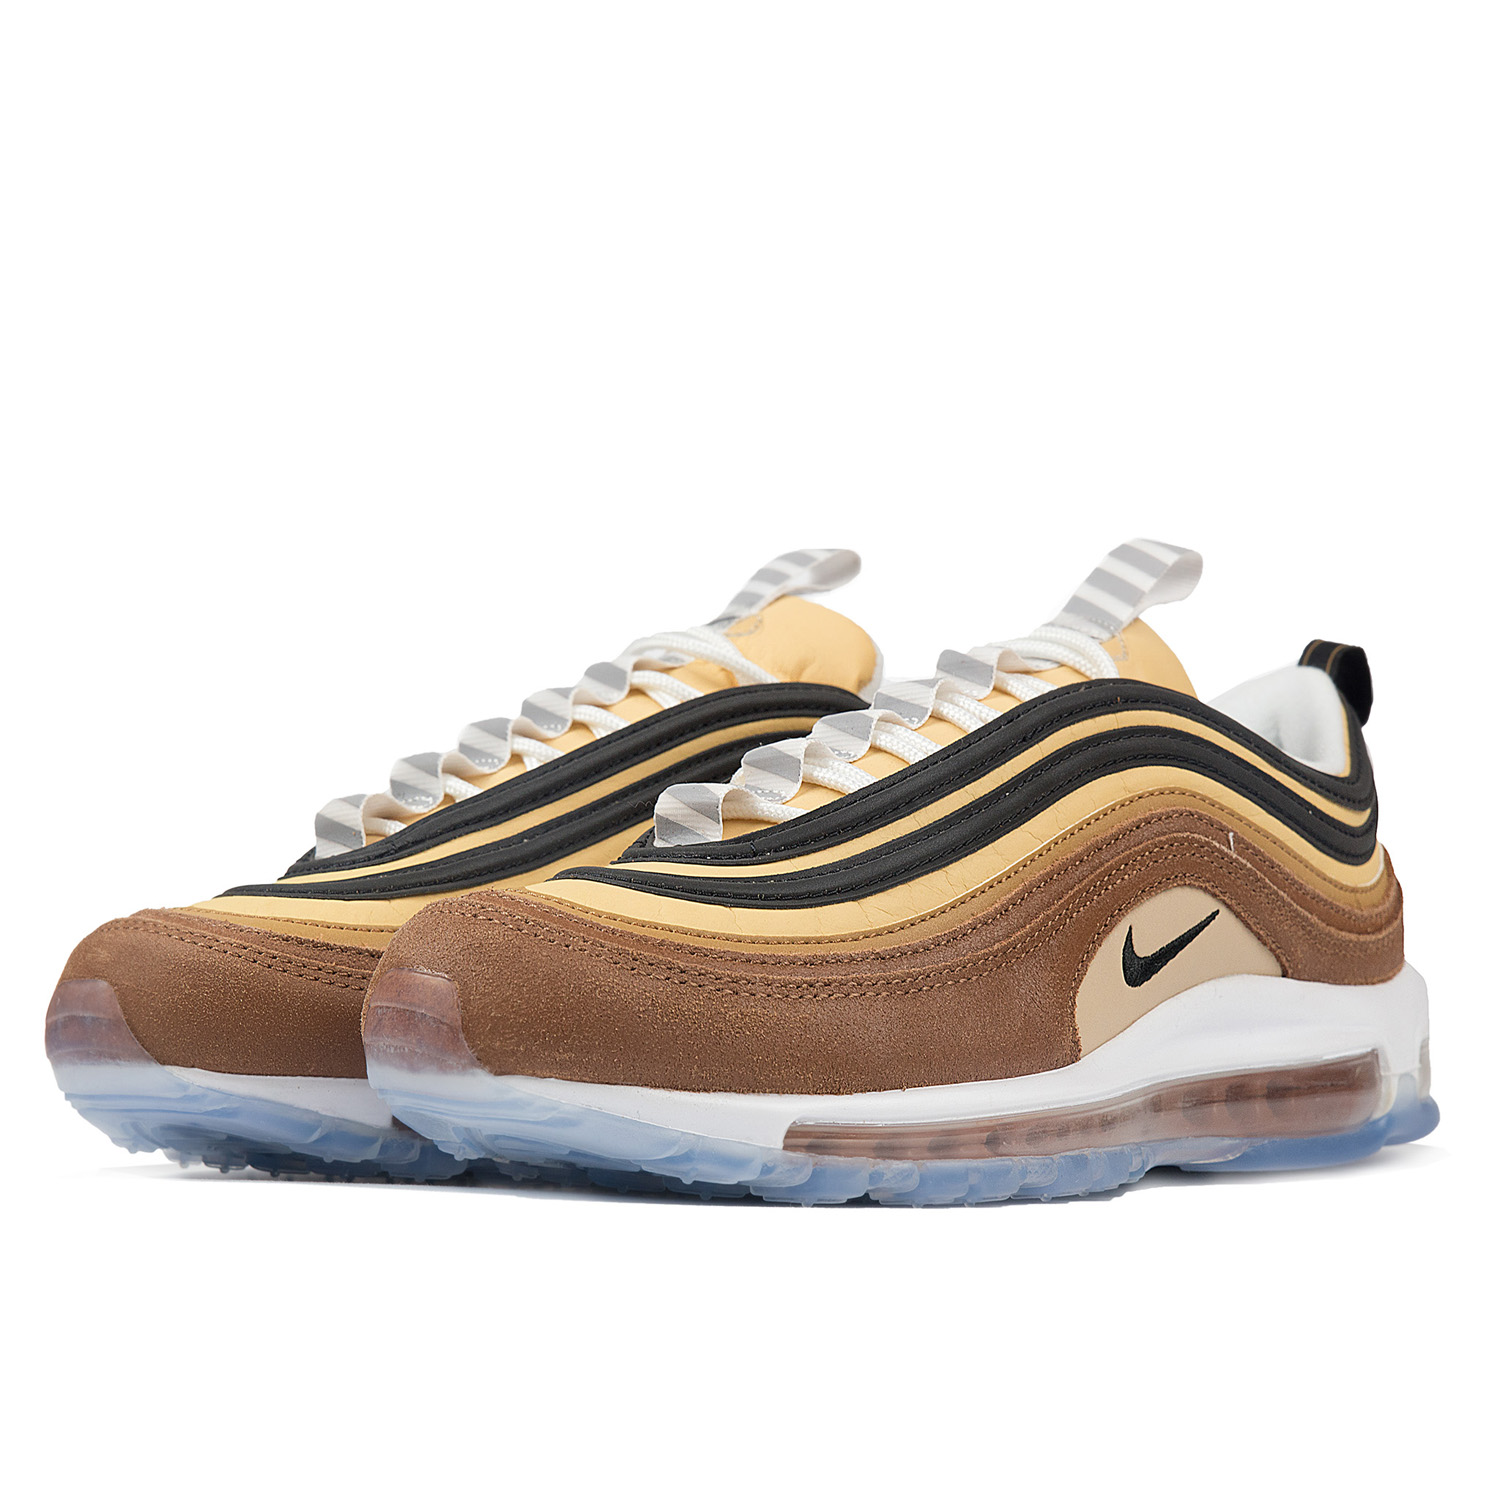 MENS NIKE AIR Max 97 921826 201 Ale BrownBlack NEW Size 10